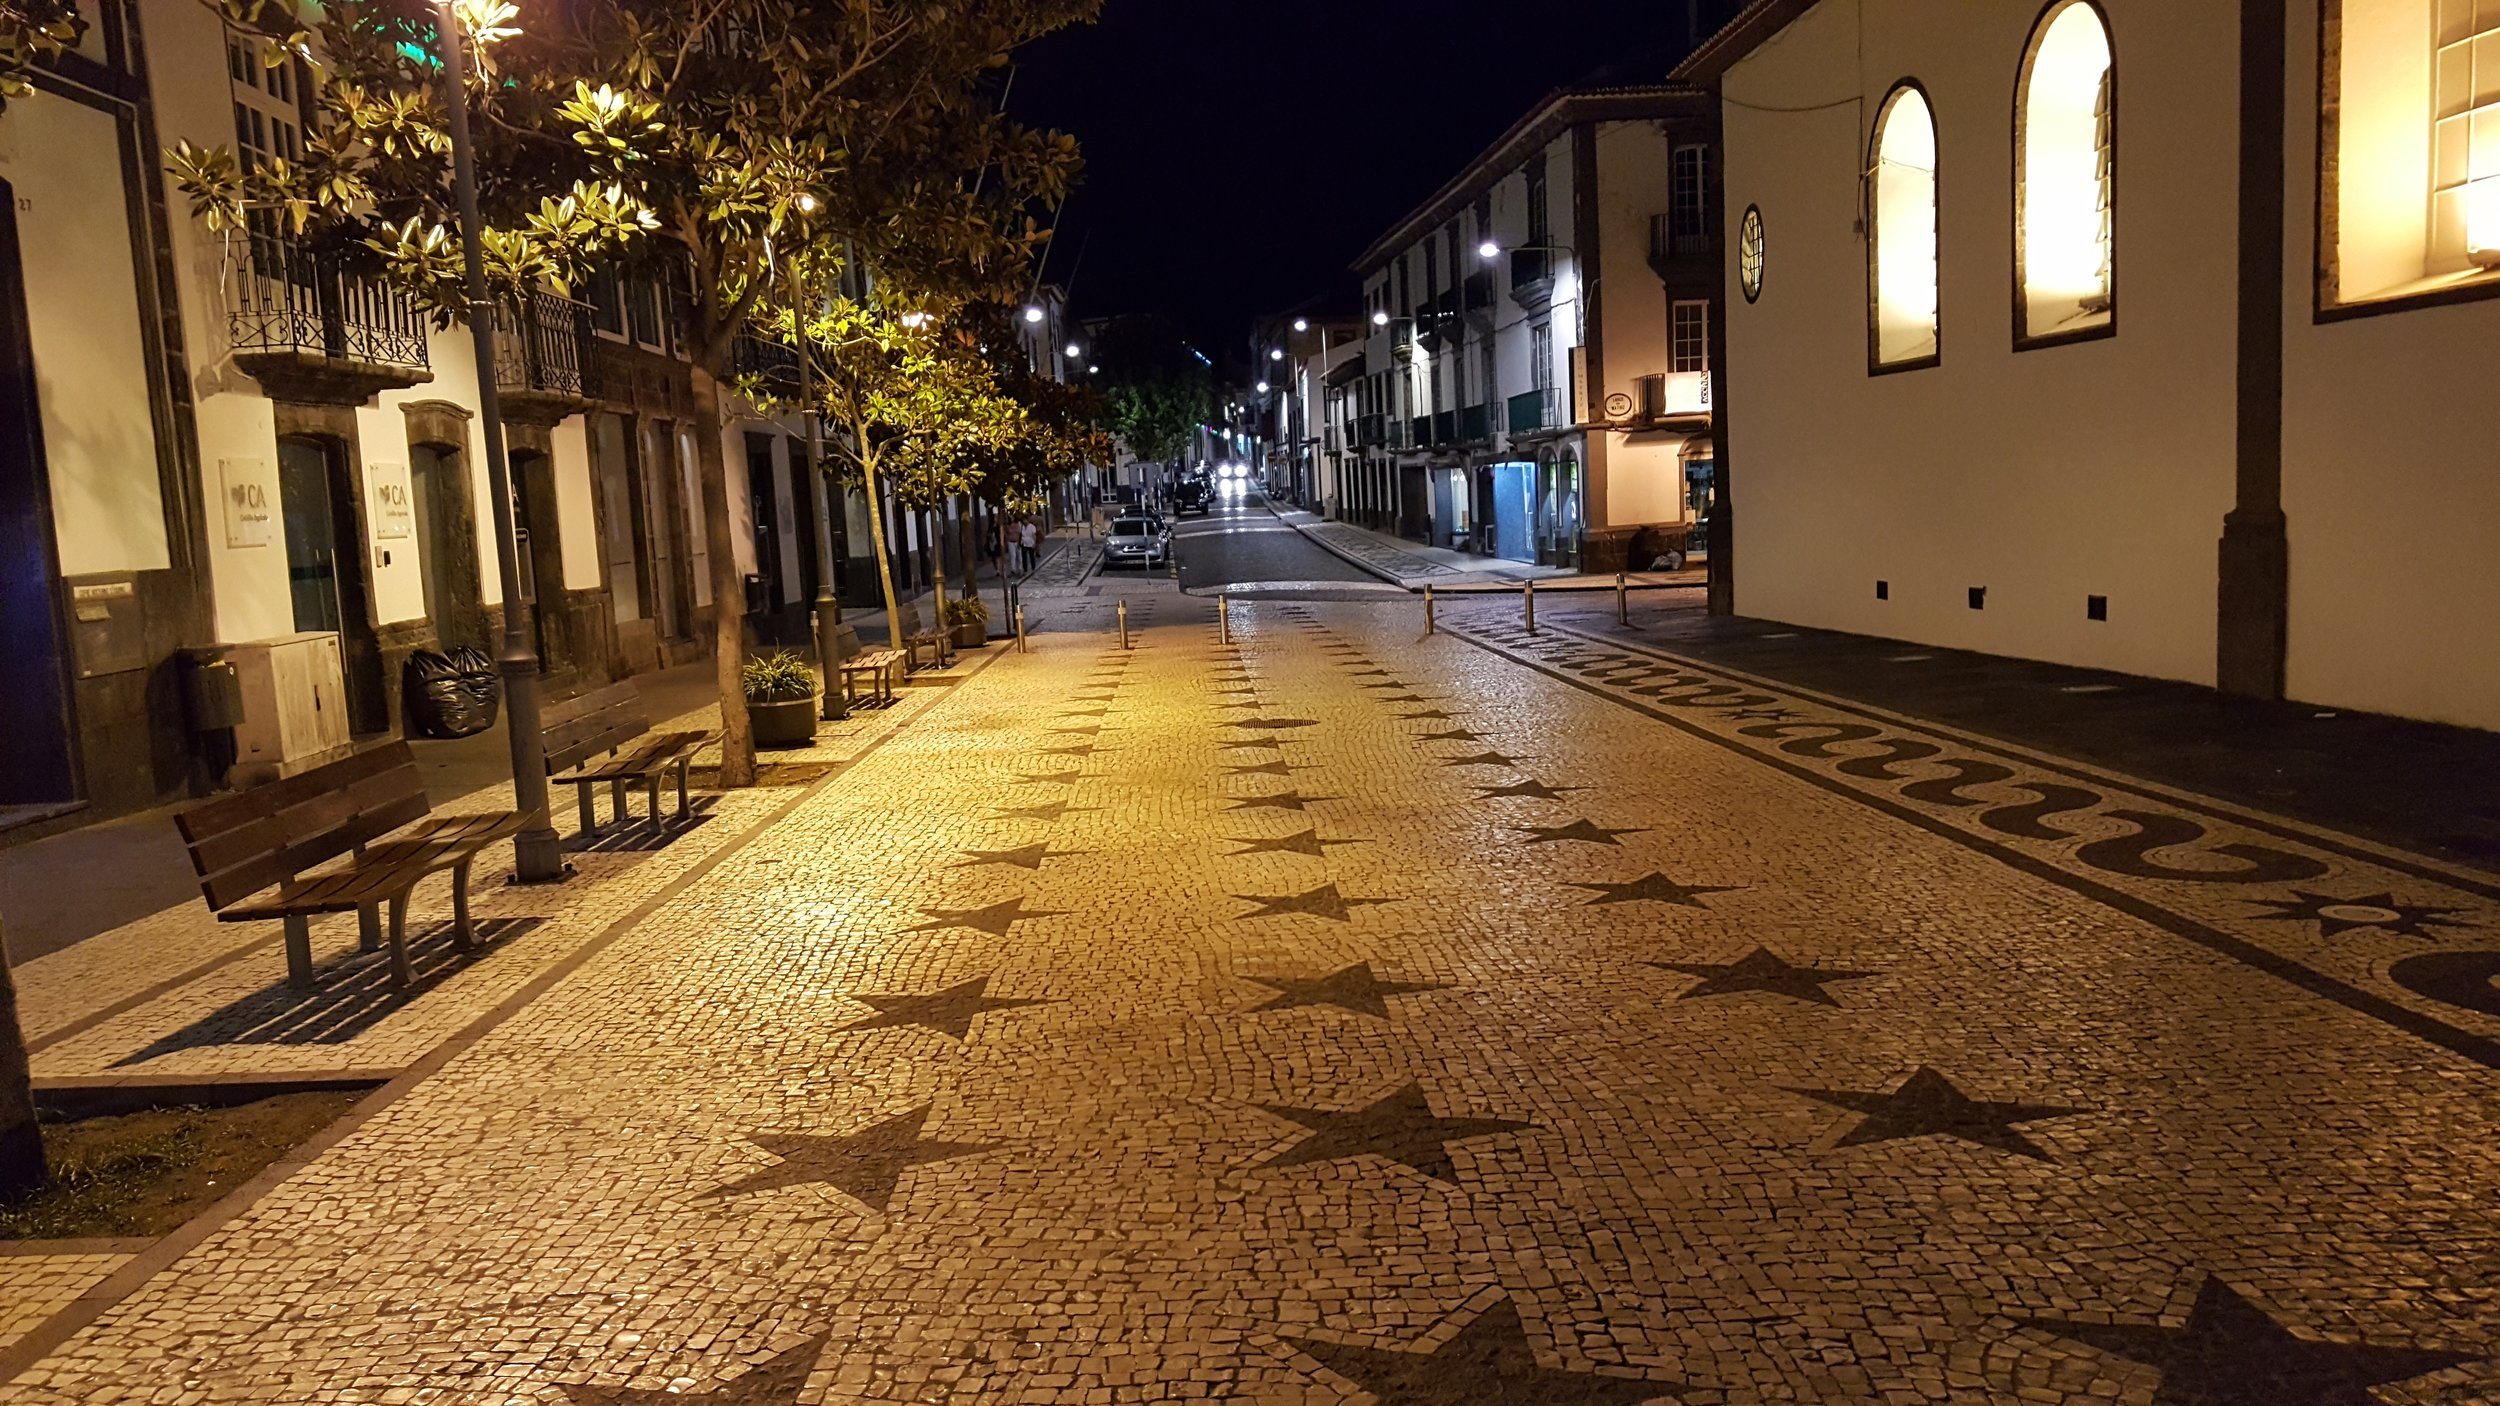 The City of Ponta Delgada